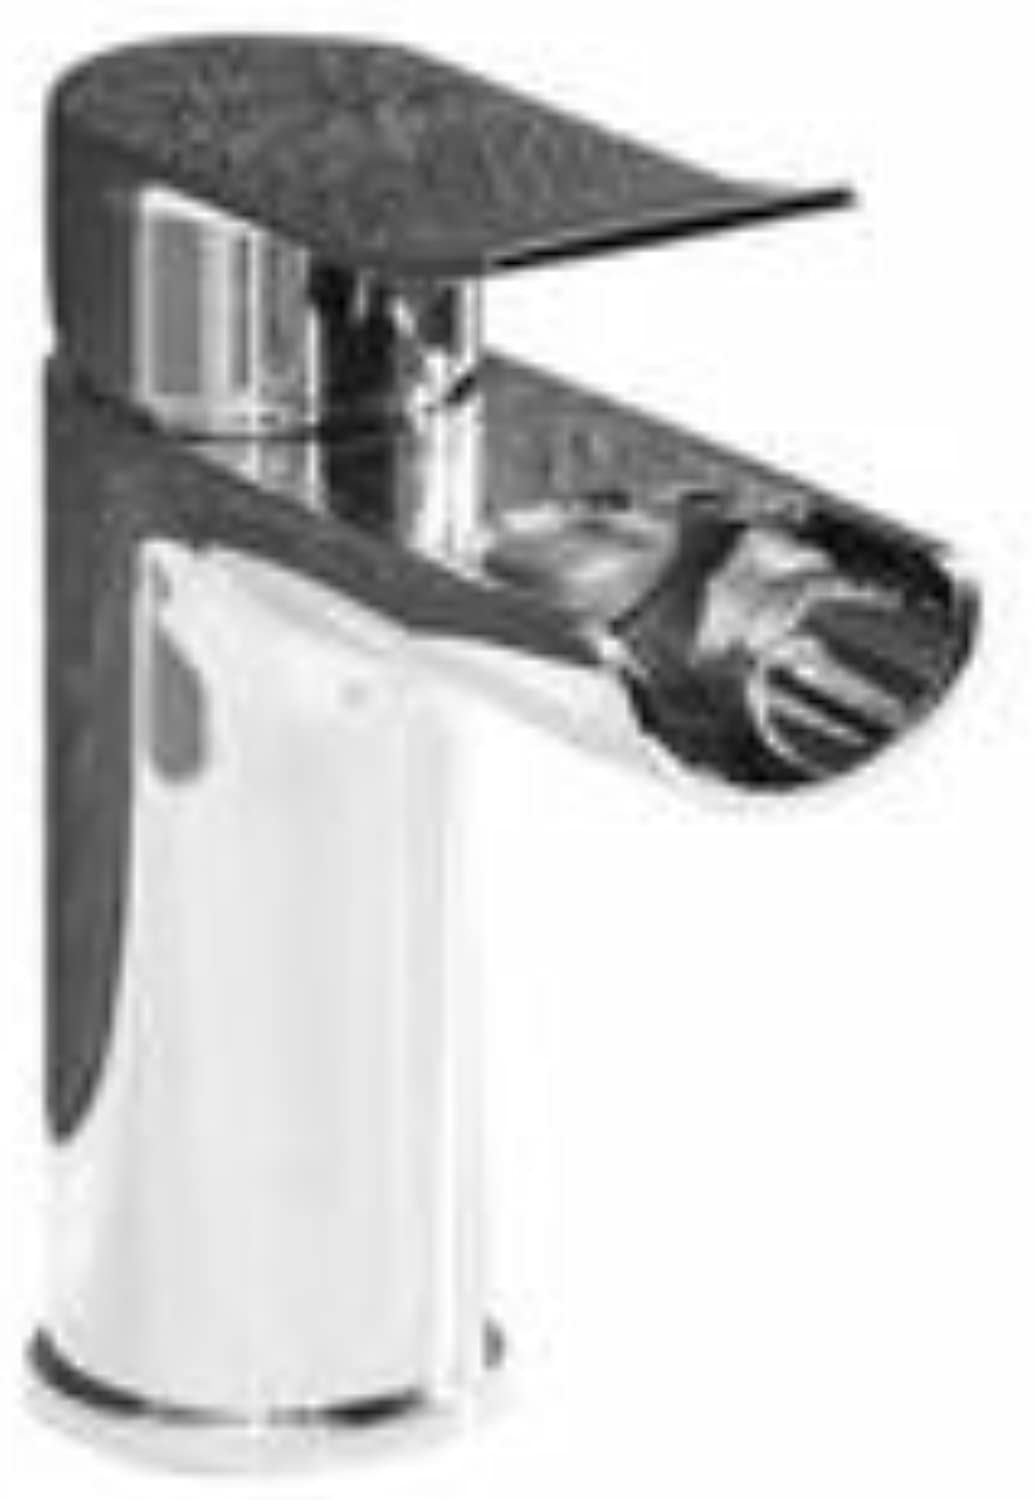 Waterfall Drench Basin Mixer Tap including Clicker Waste